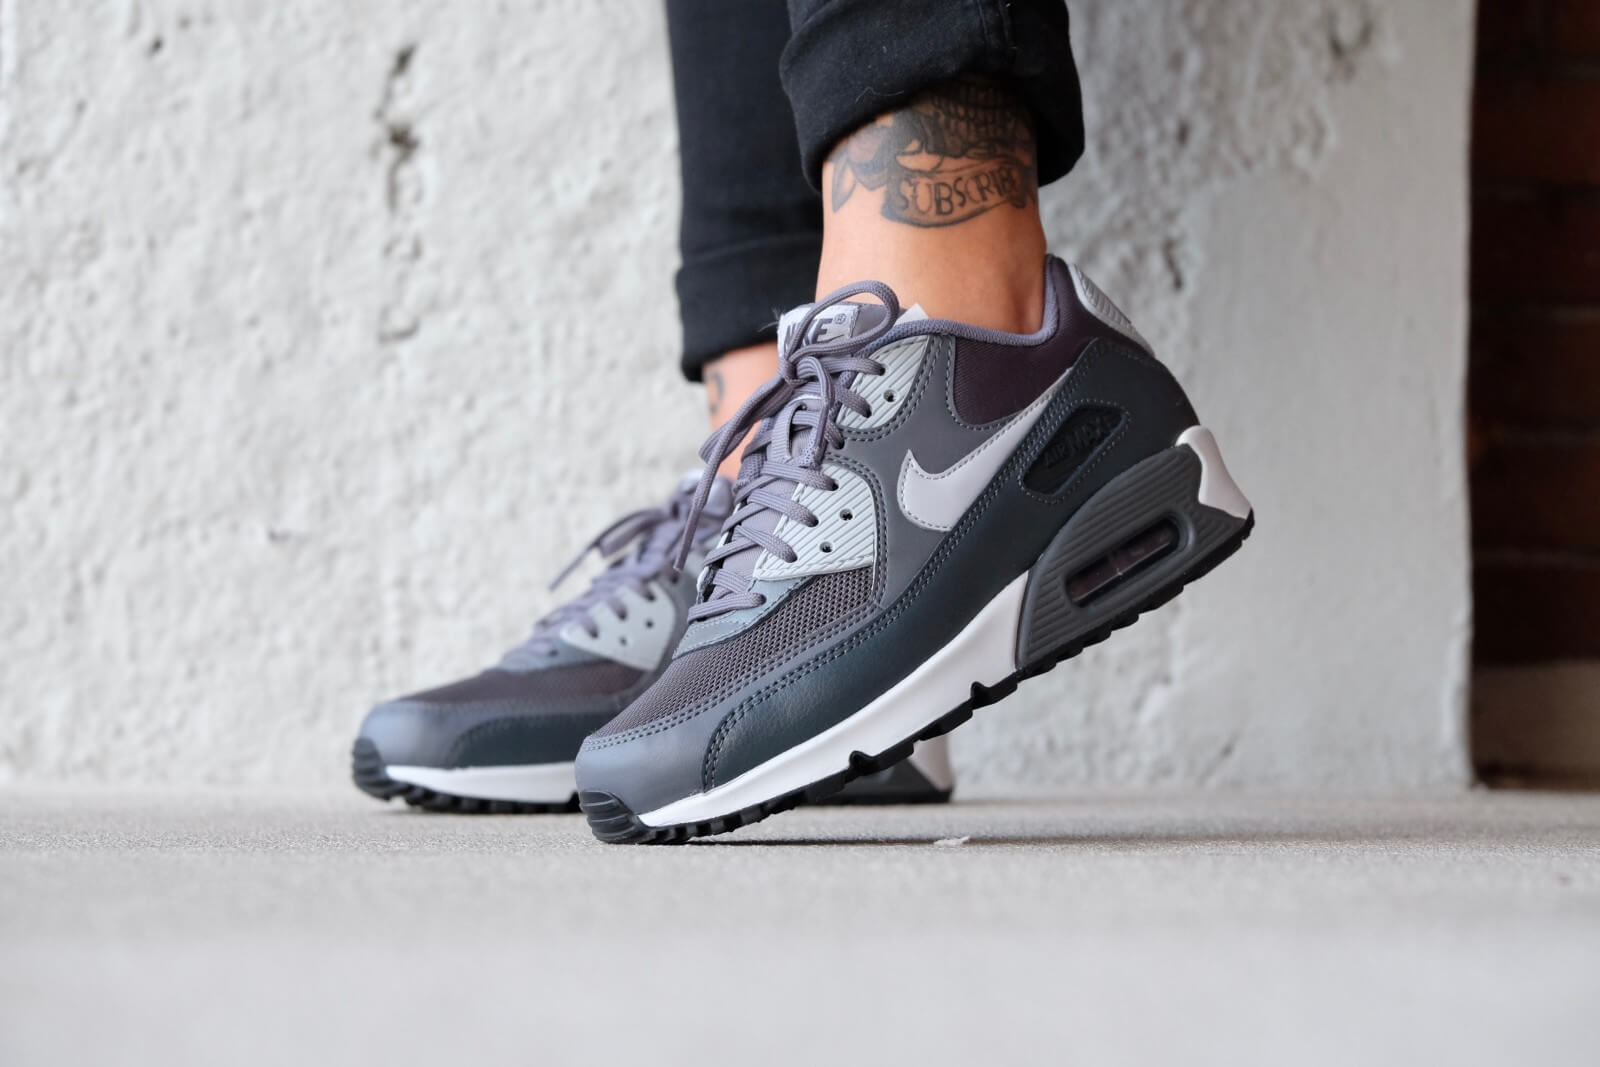 Nike Air Max 90 Essential Dark greyWolf grey Anthracite 616730 030 Wmn Sz 7.5